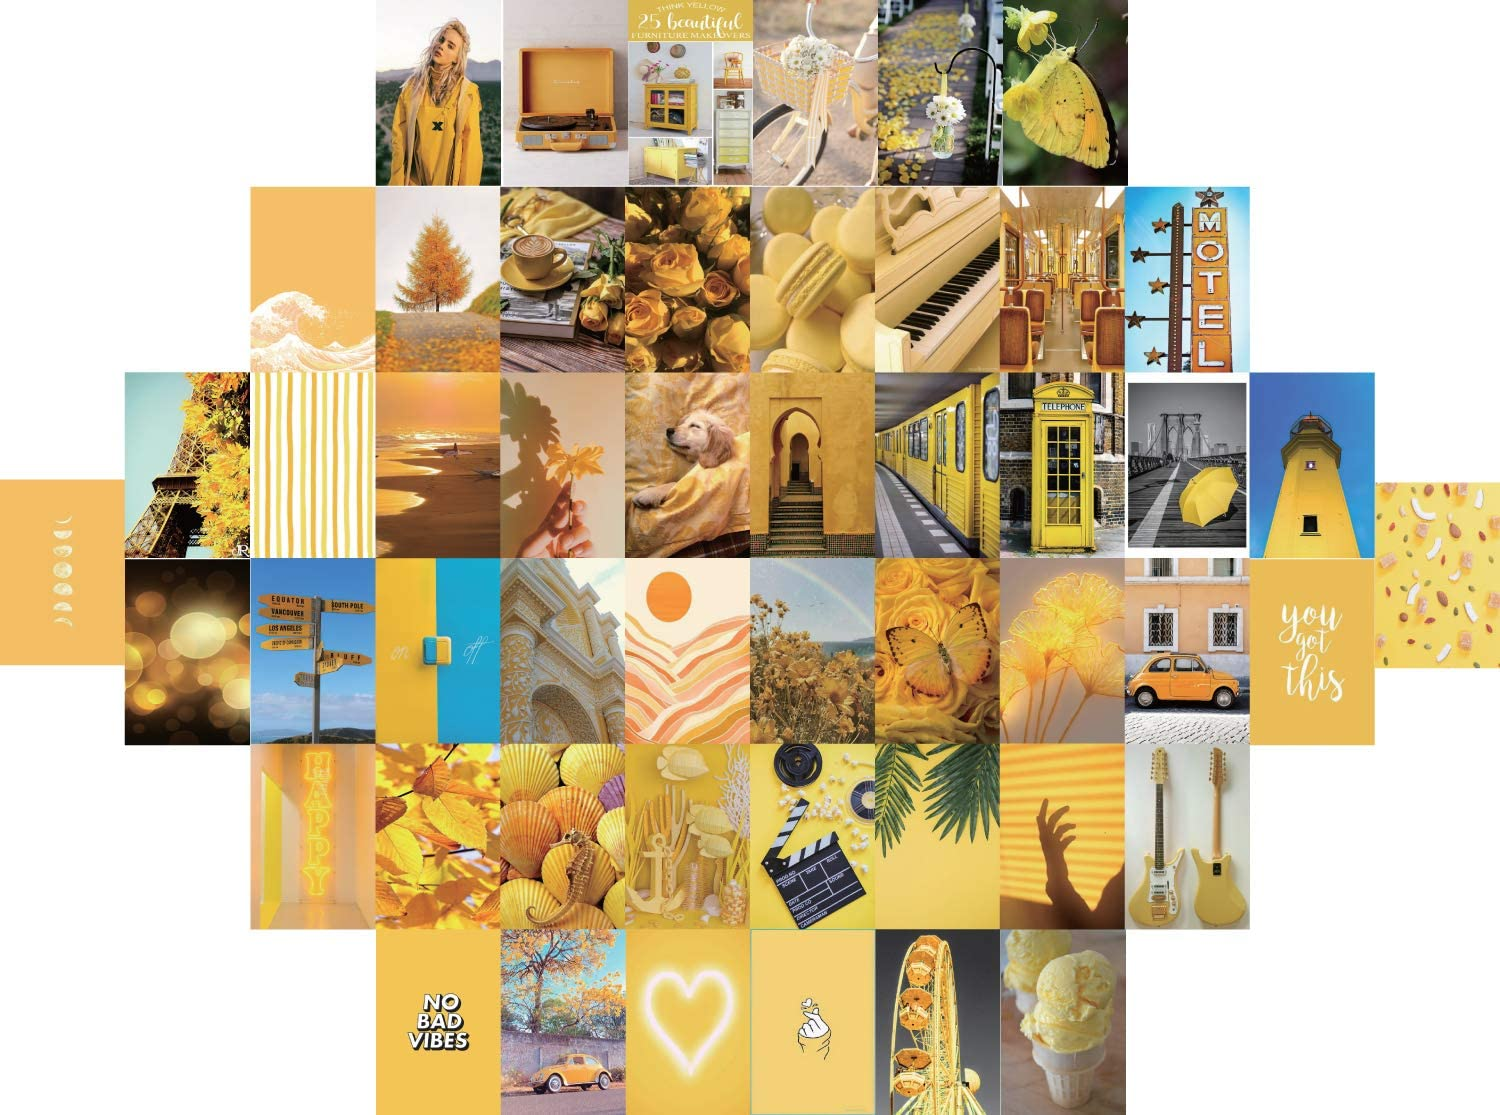 Yellow Wall Collage Kit Aesthetic Pictures, Bedroom Decor For Teen, Aesthetic Posters, Wall Collage Kit For Girls Young Adults' Bedroom Decor, Bohemia Dorm Wall Décor Collage Kit(50PCS 4x6inch )